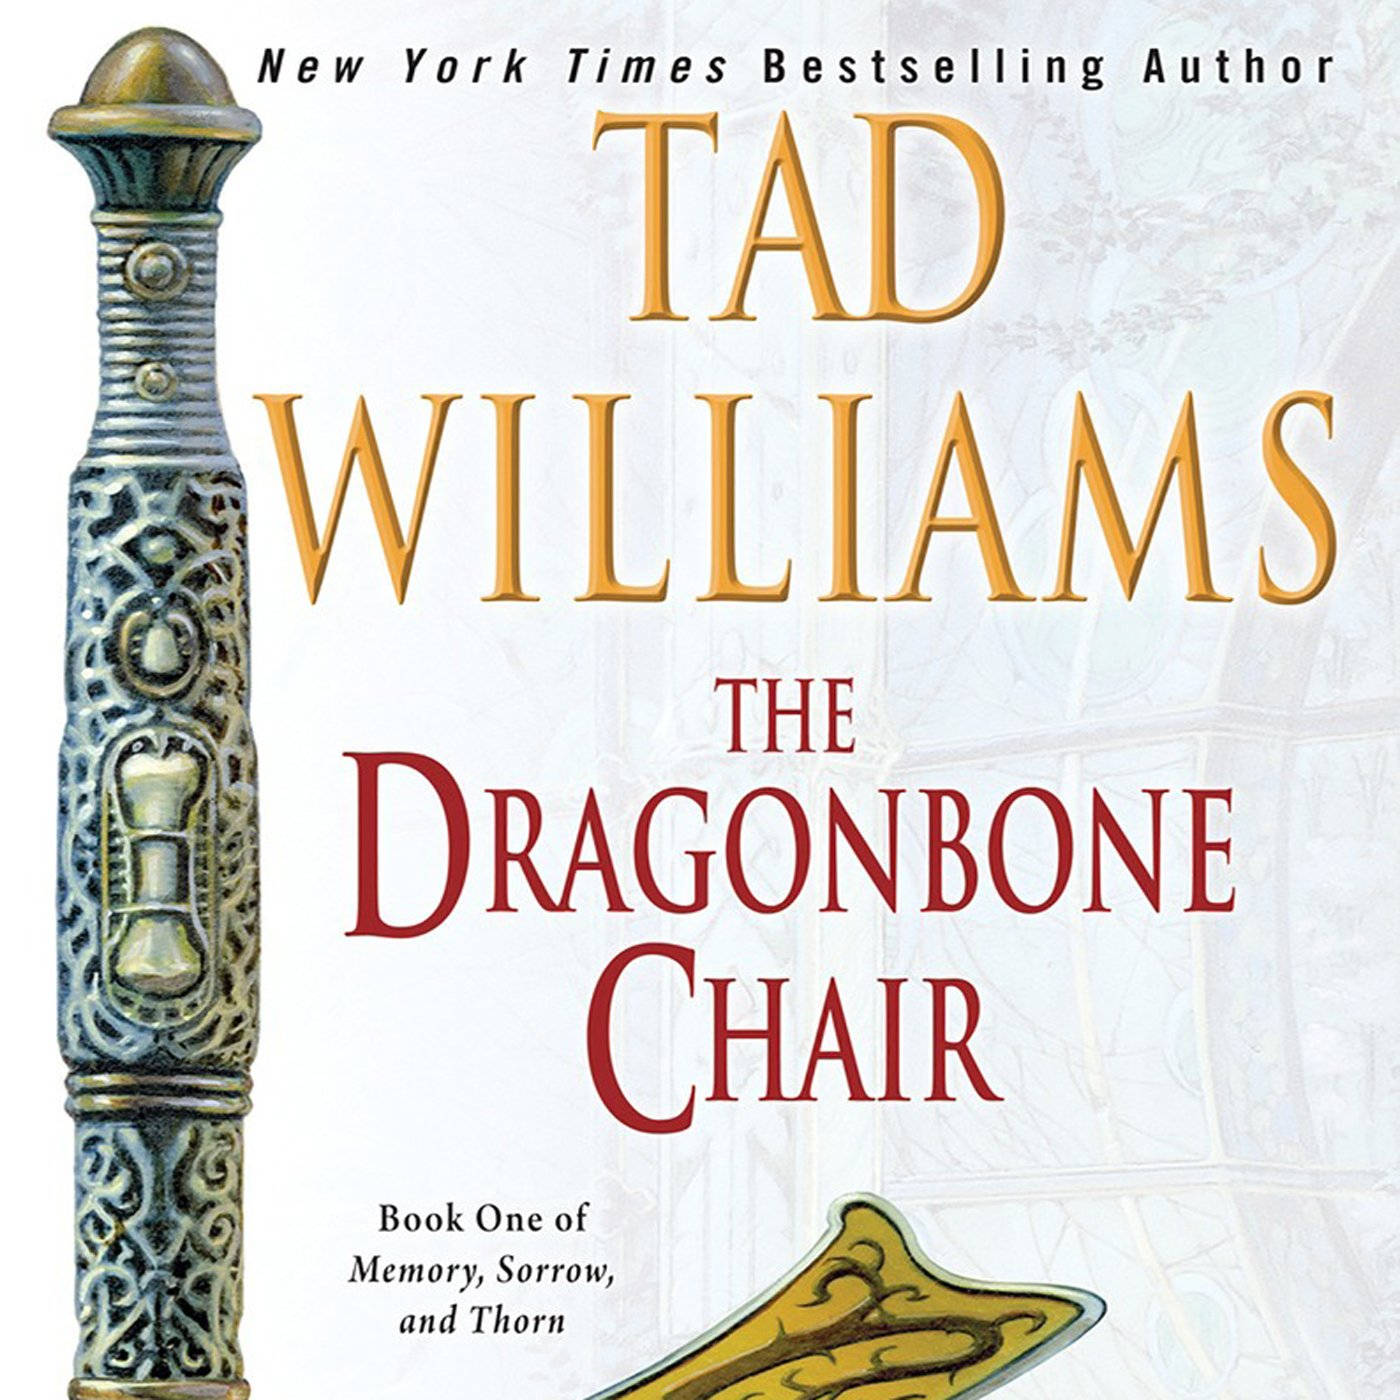 The Dragonbone Chair: Memory, Sorrow, and Thorn, Book One